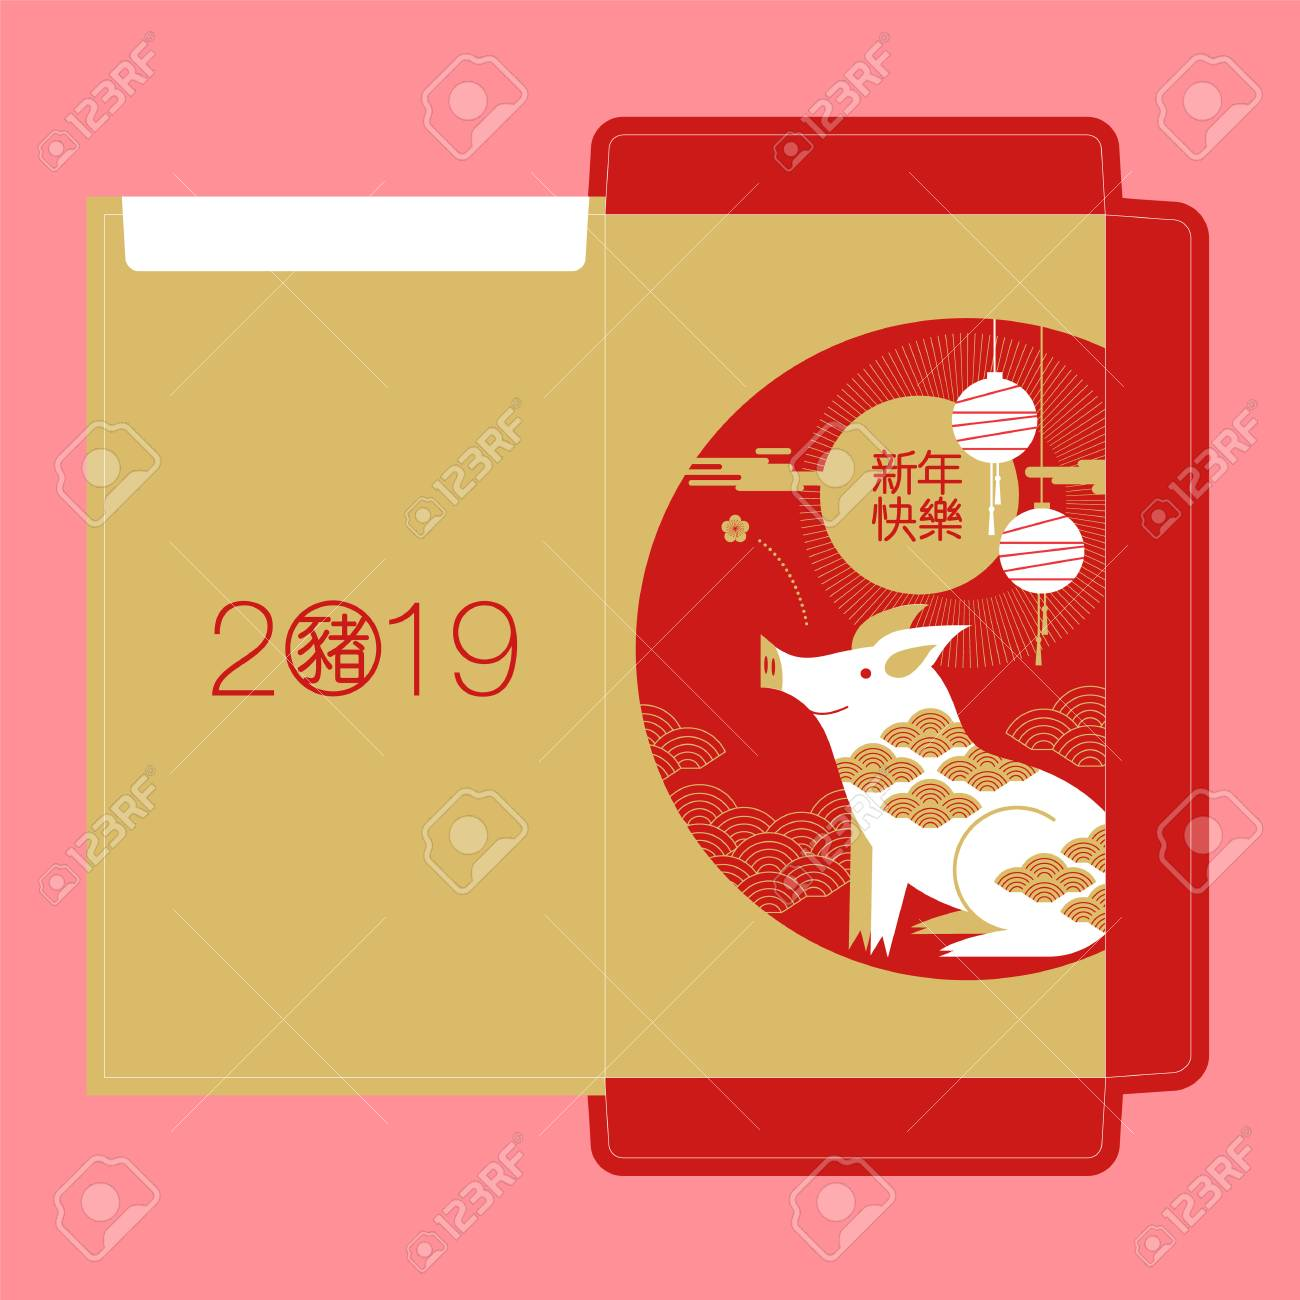 Envelope, Reward , happy new year, 2019, Chinese new year greetings, Year of the pig , fortune, (Translation: Happy new year/ rich / pig ) - 103902885